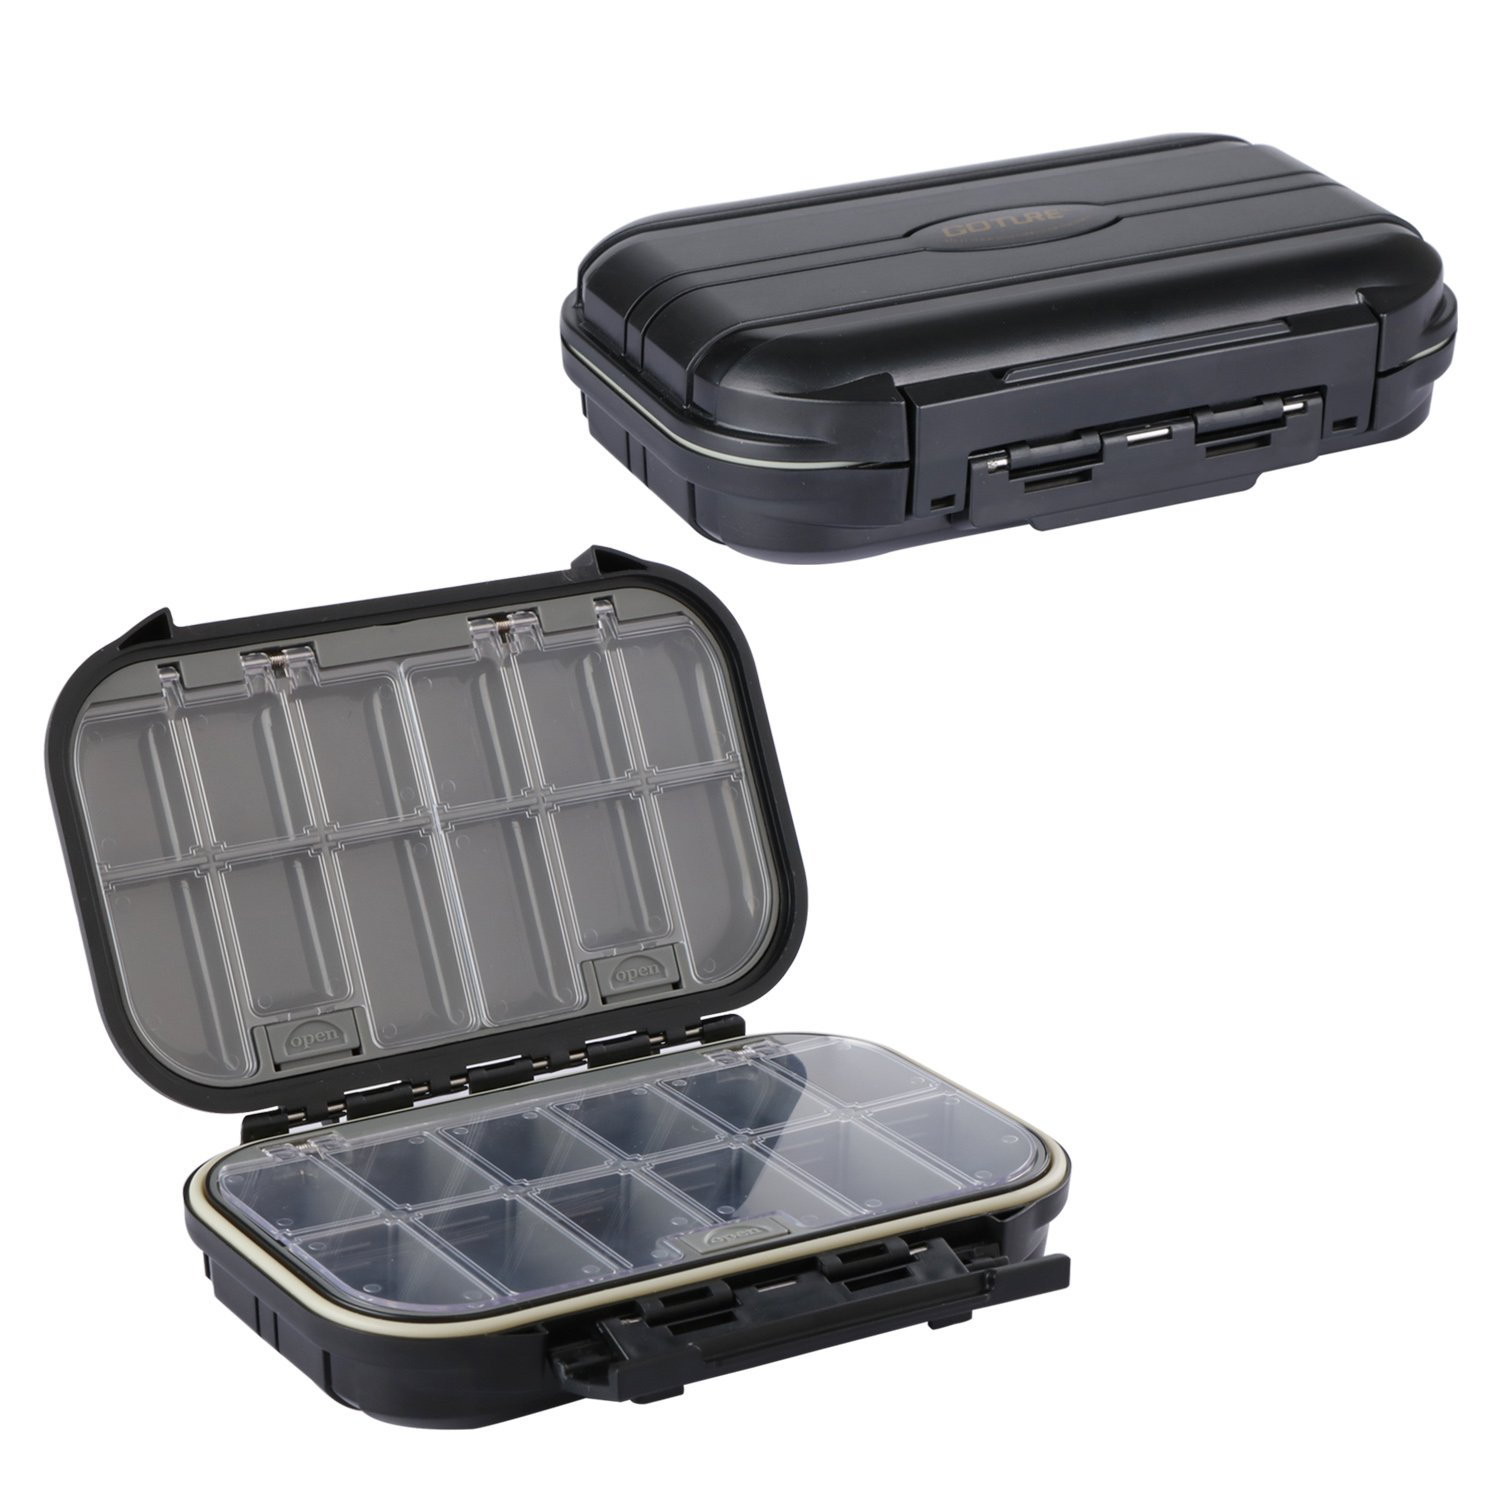 Goture Fishing-Lure-Boxes-Bait Tackle-Plastic-Storage, Small-Lure-Case, Mini-Lure-Box for Vest, Fishing-Accessories Large Boxes Storage Containers